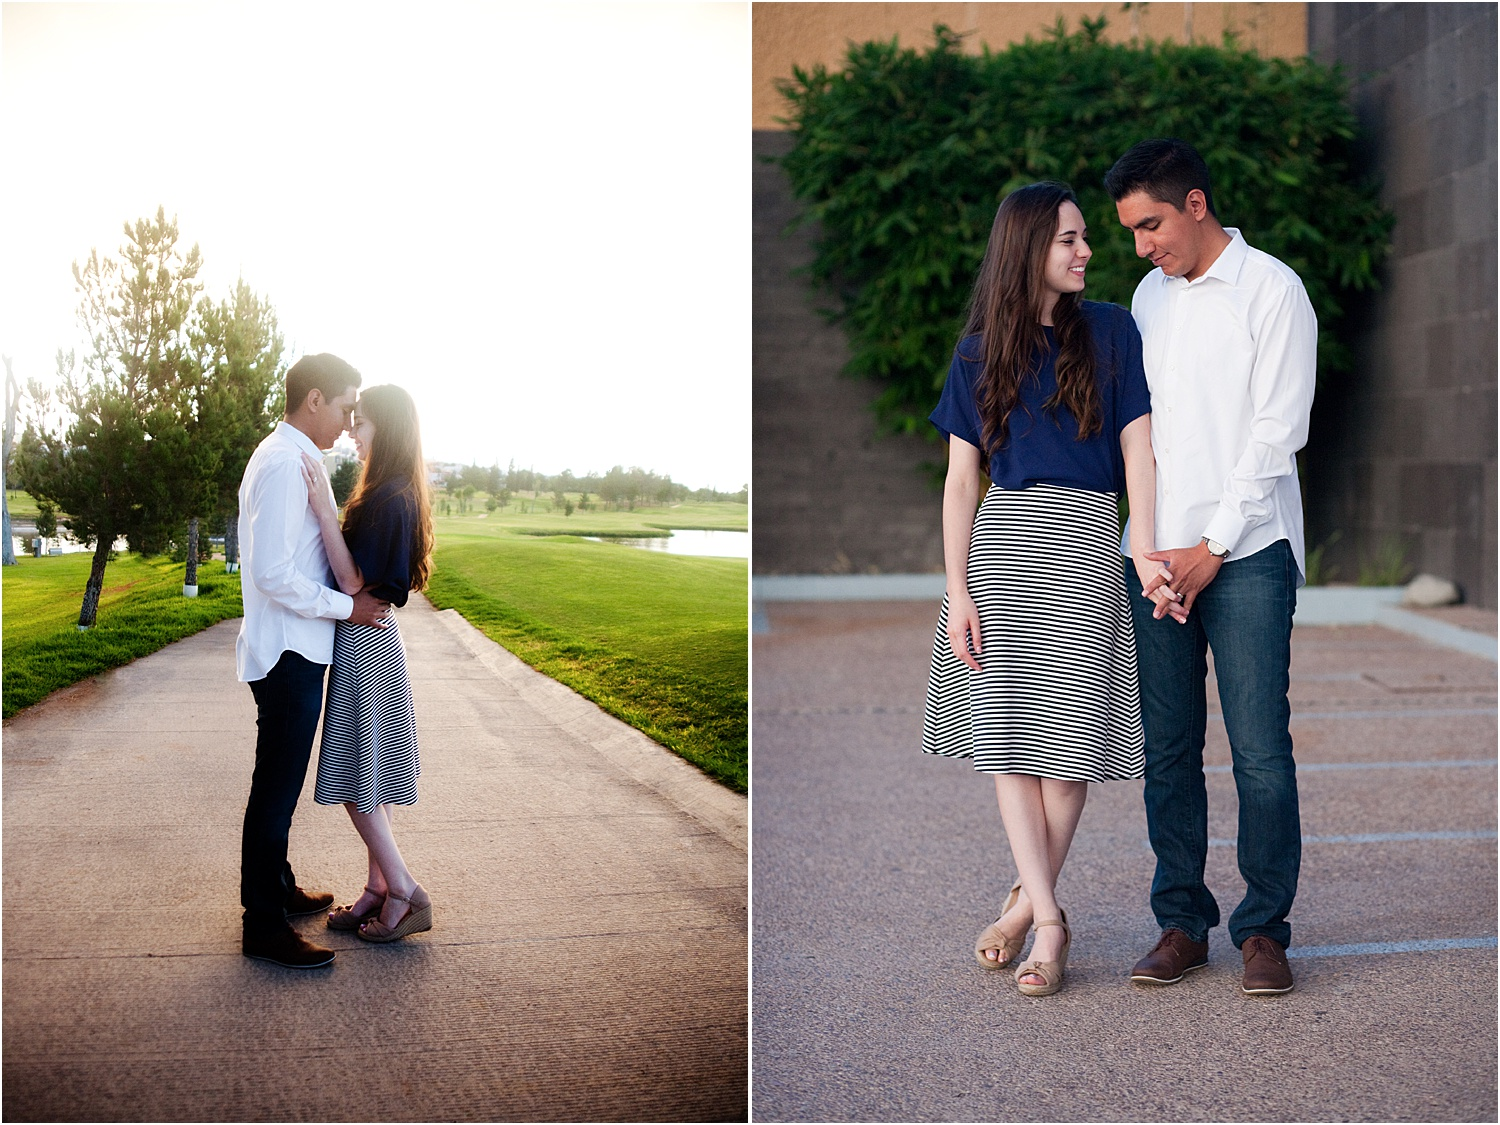 2 - Guide to the Best Poses for Engagement Photos